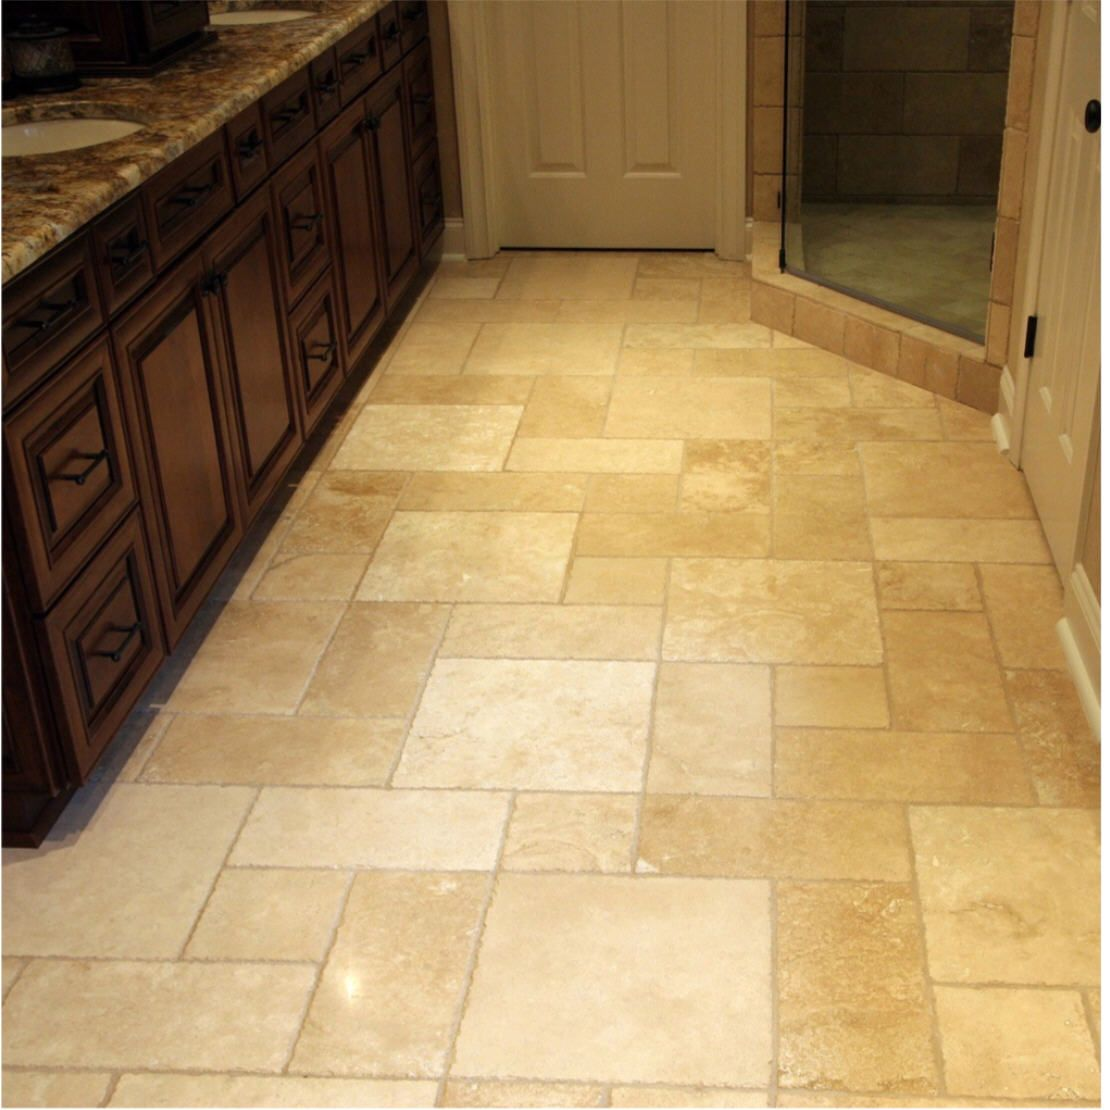 Travertine Tile Designs travertine tile floor pattern called hopscotch | affordable design